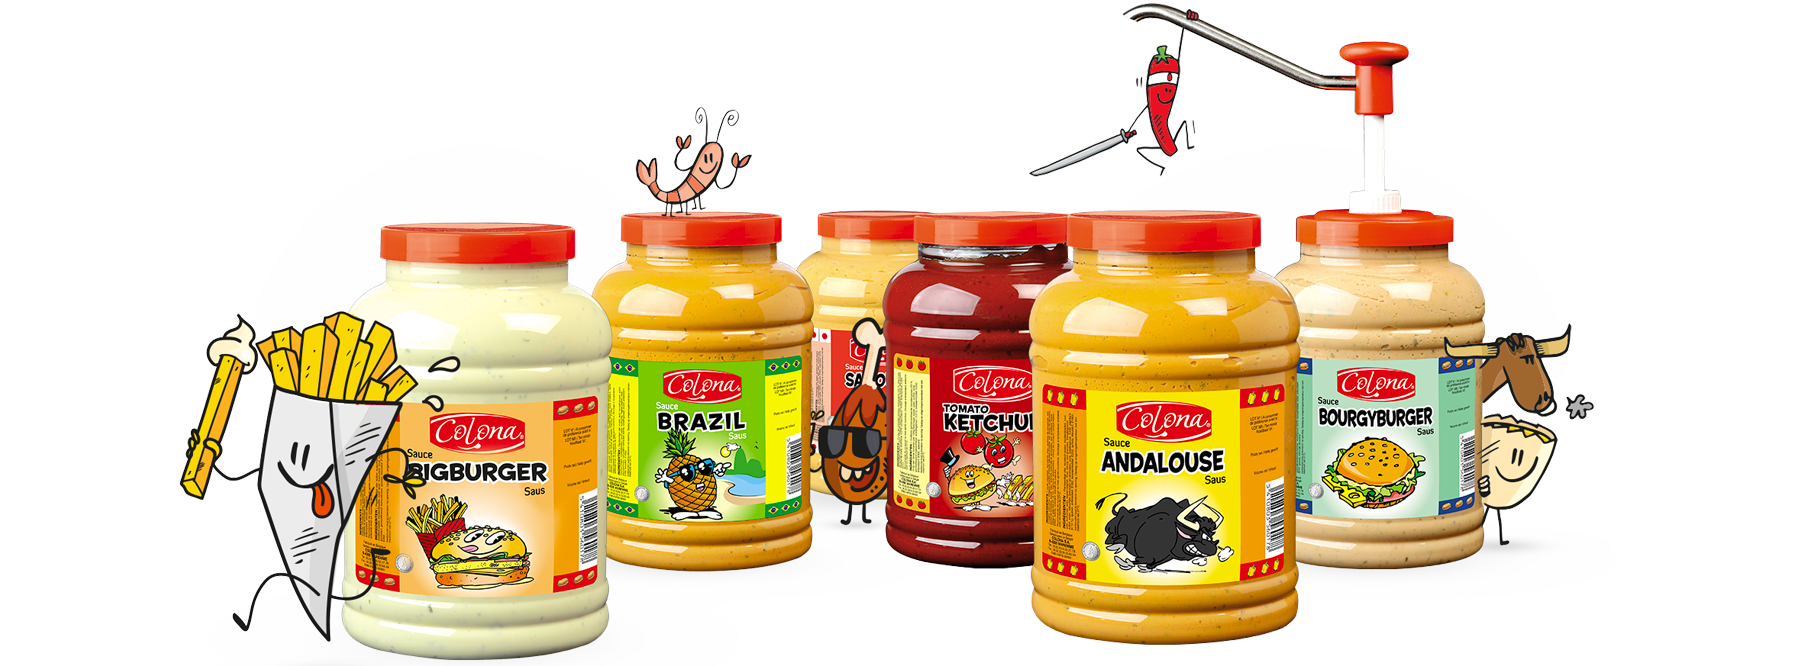 Colona sauces